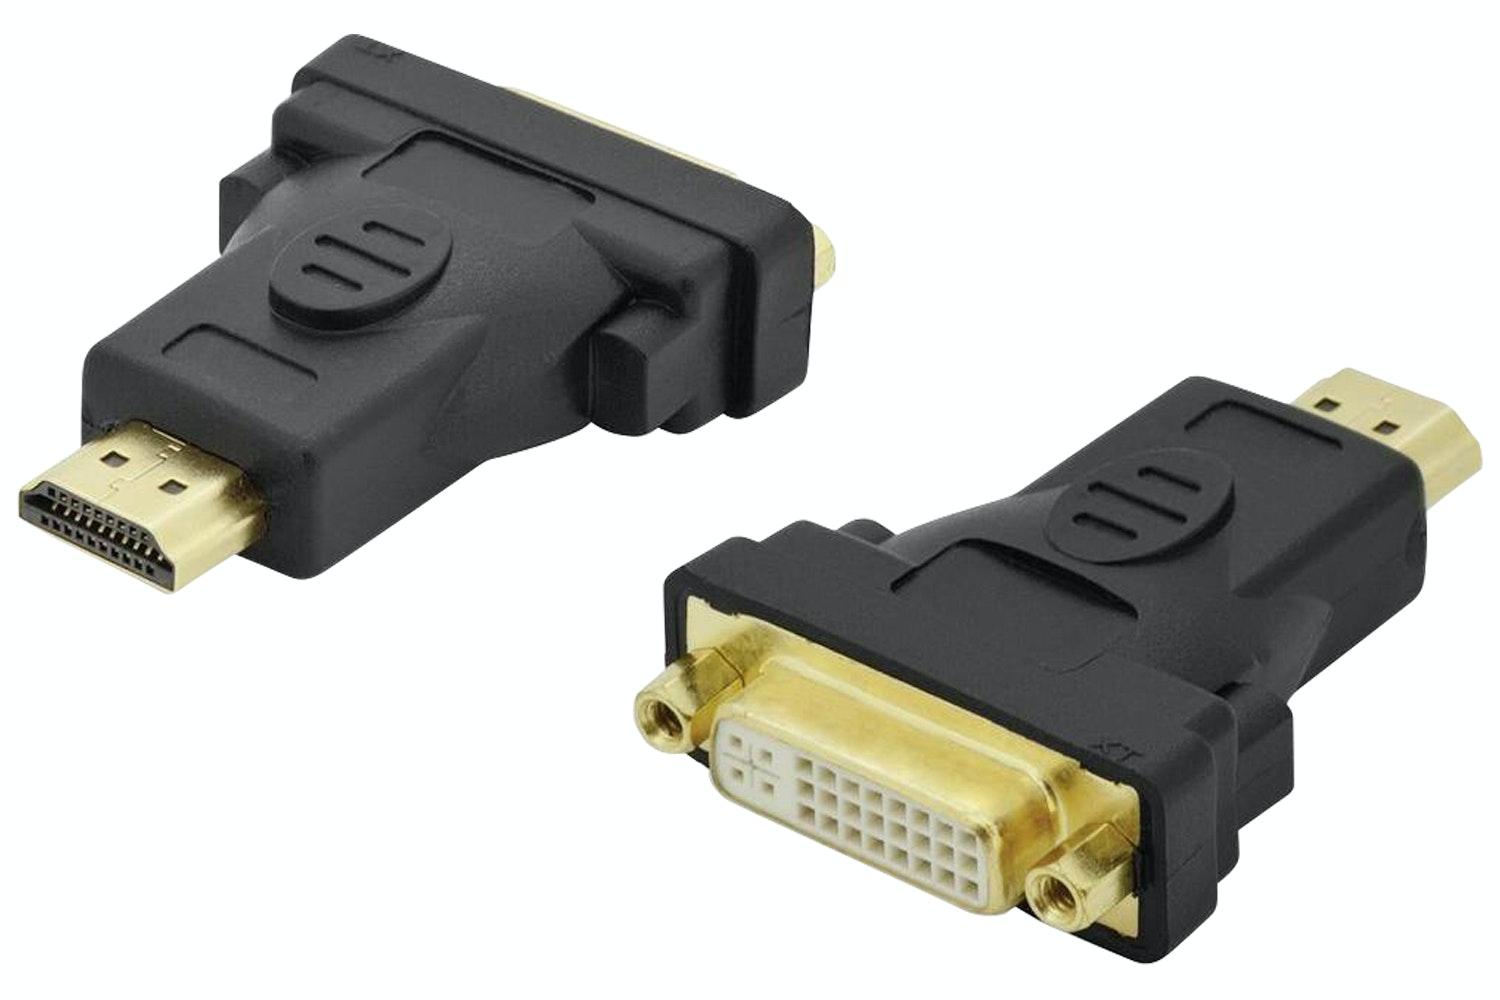 Ednet HDMI to DVI-D Adapter